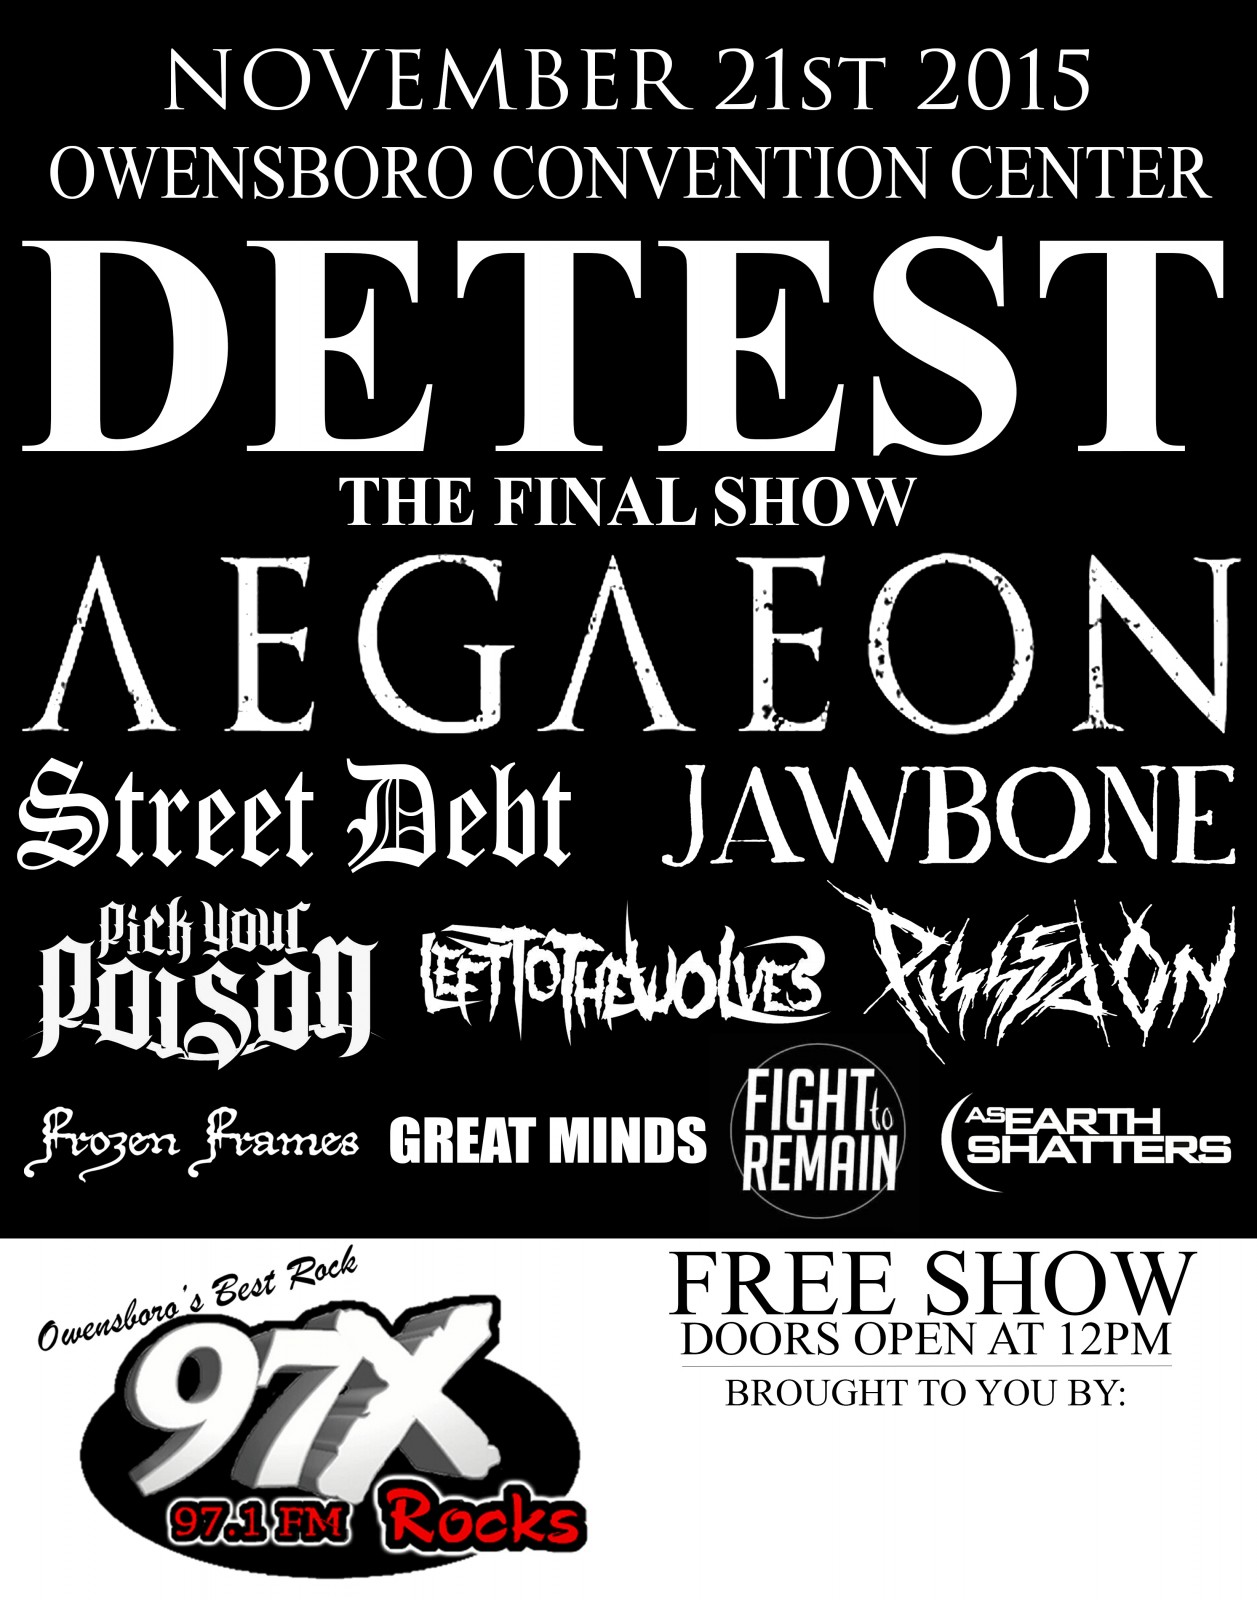 Metal Festival Coming To Owensboro Convention Center Nov. 21st!